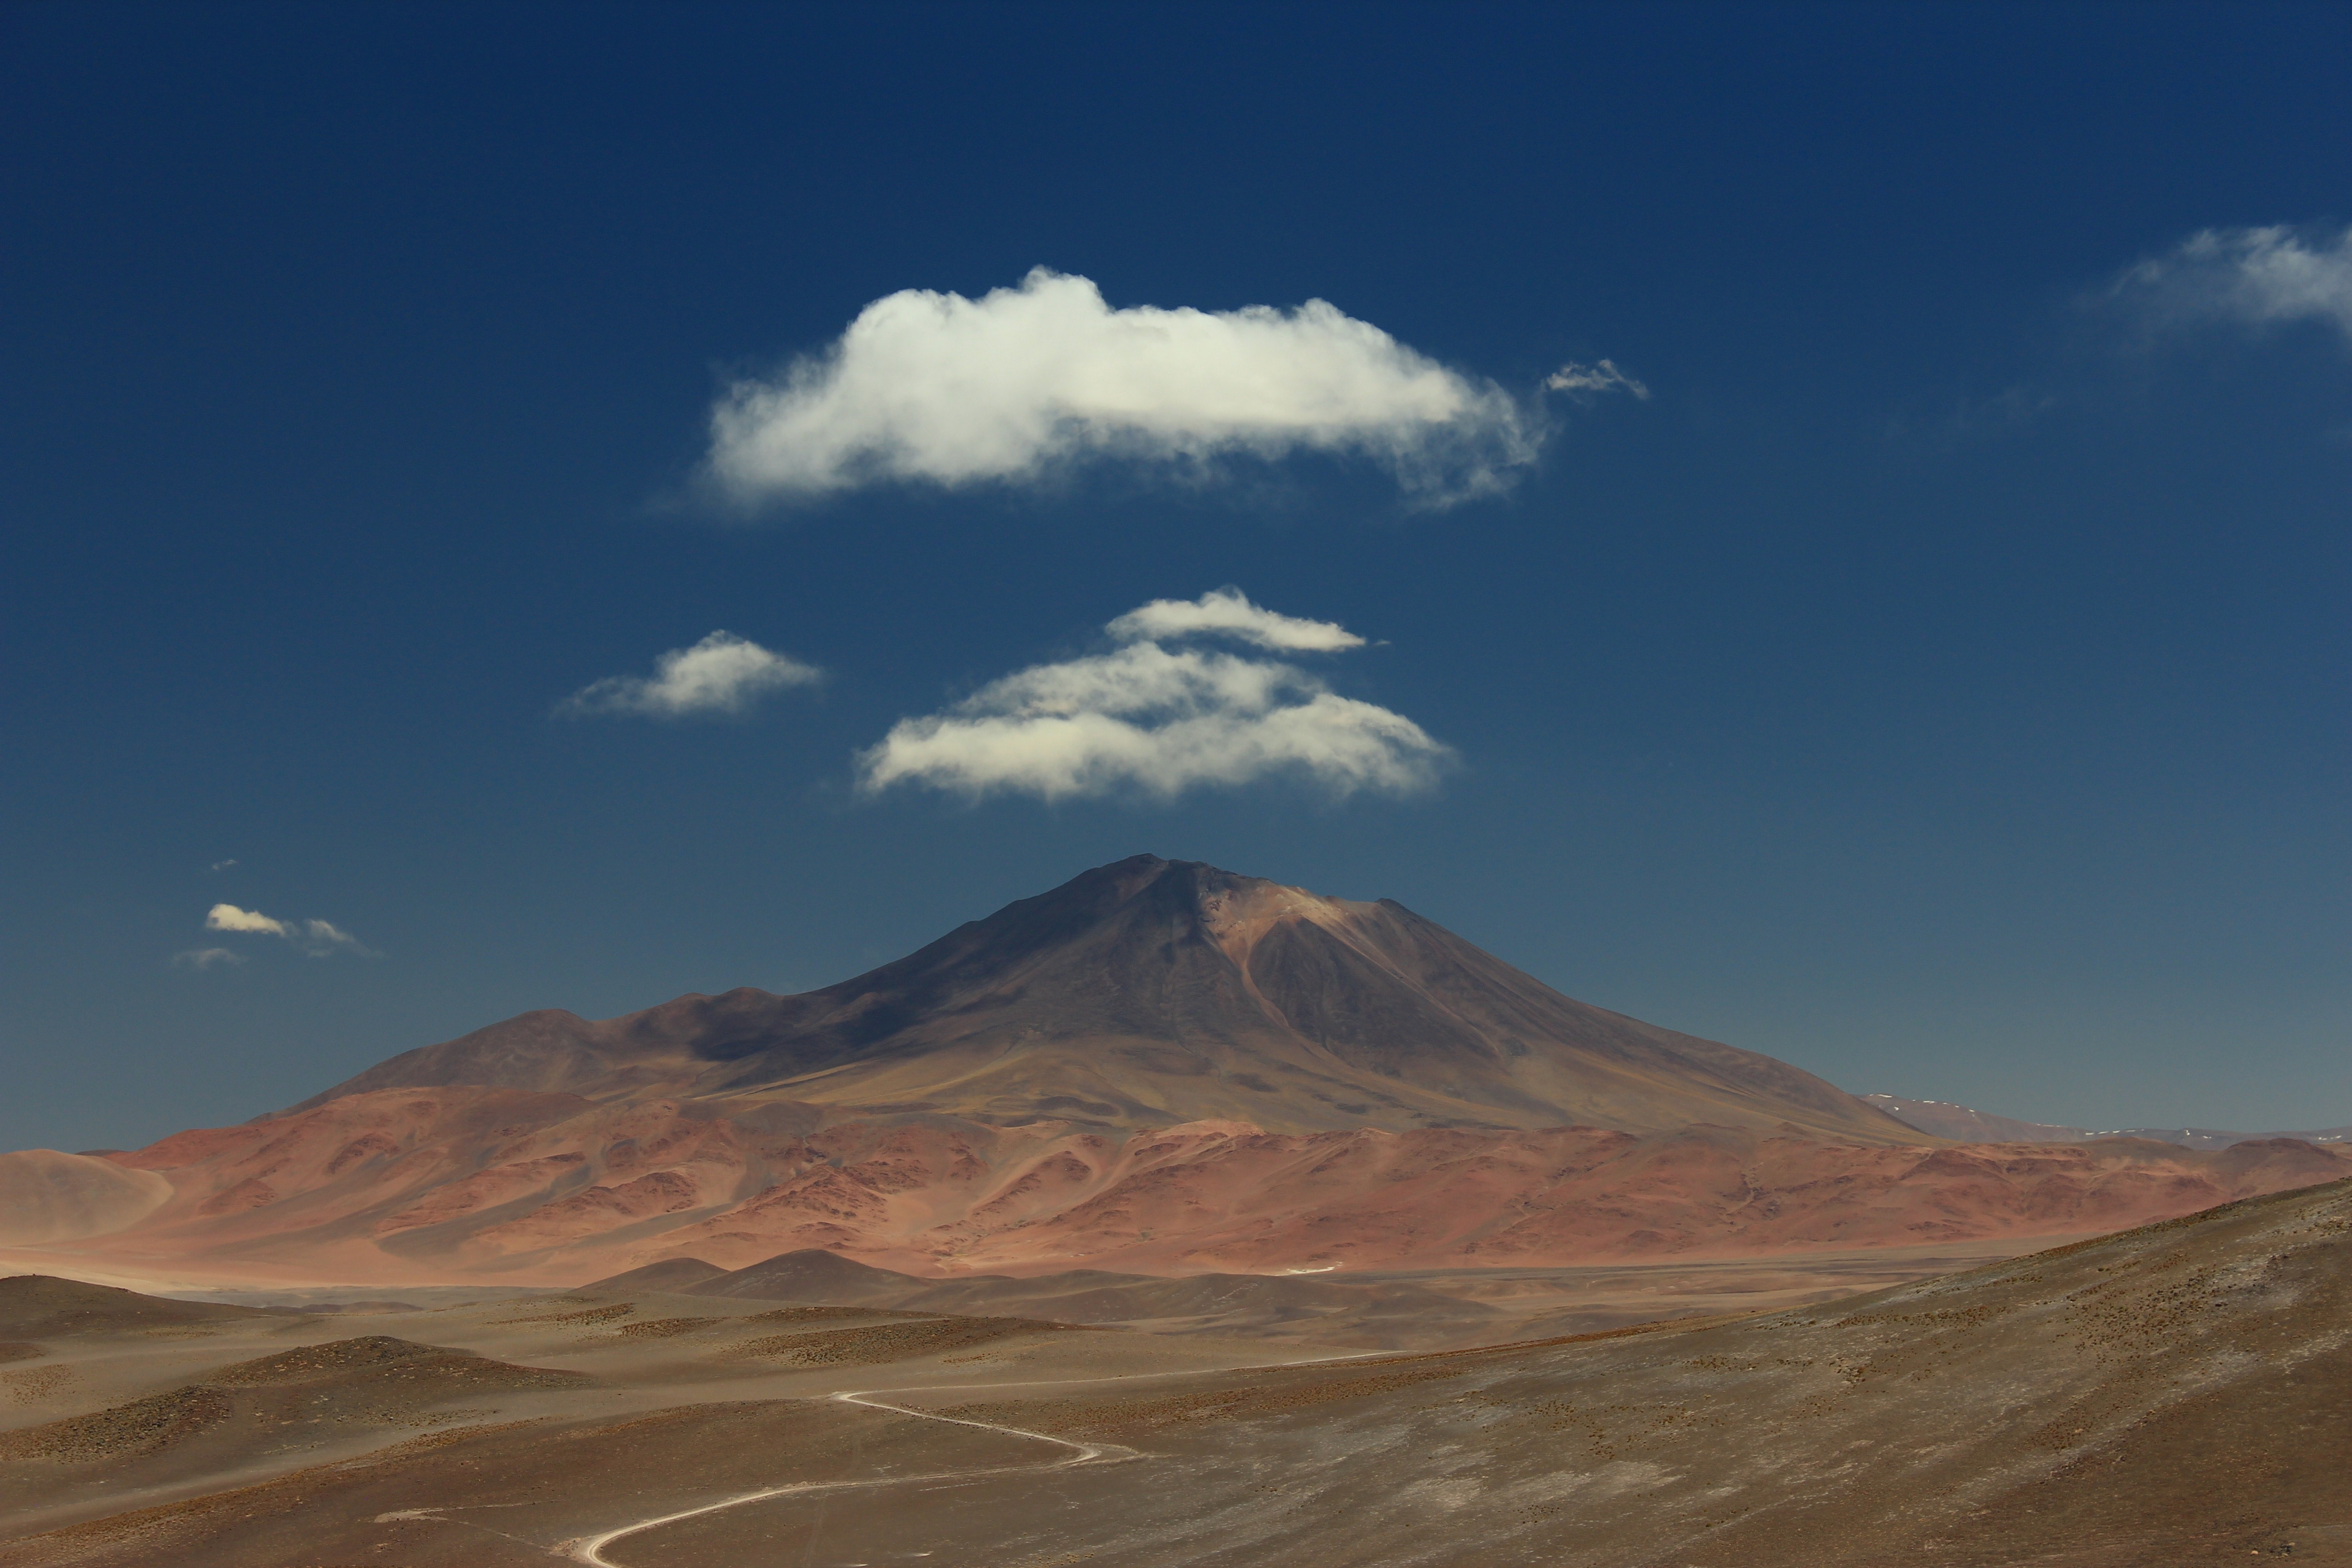 Fluffy clouds over a tall mountain with red rock slopes in Salar de Incahuasi